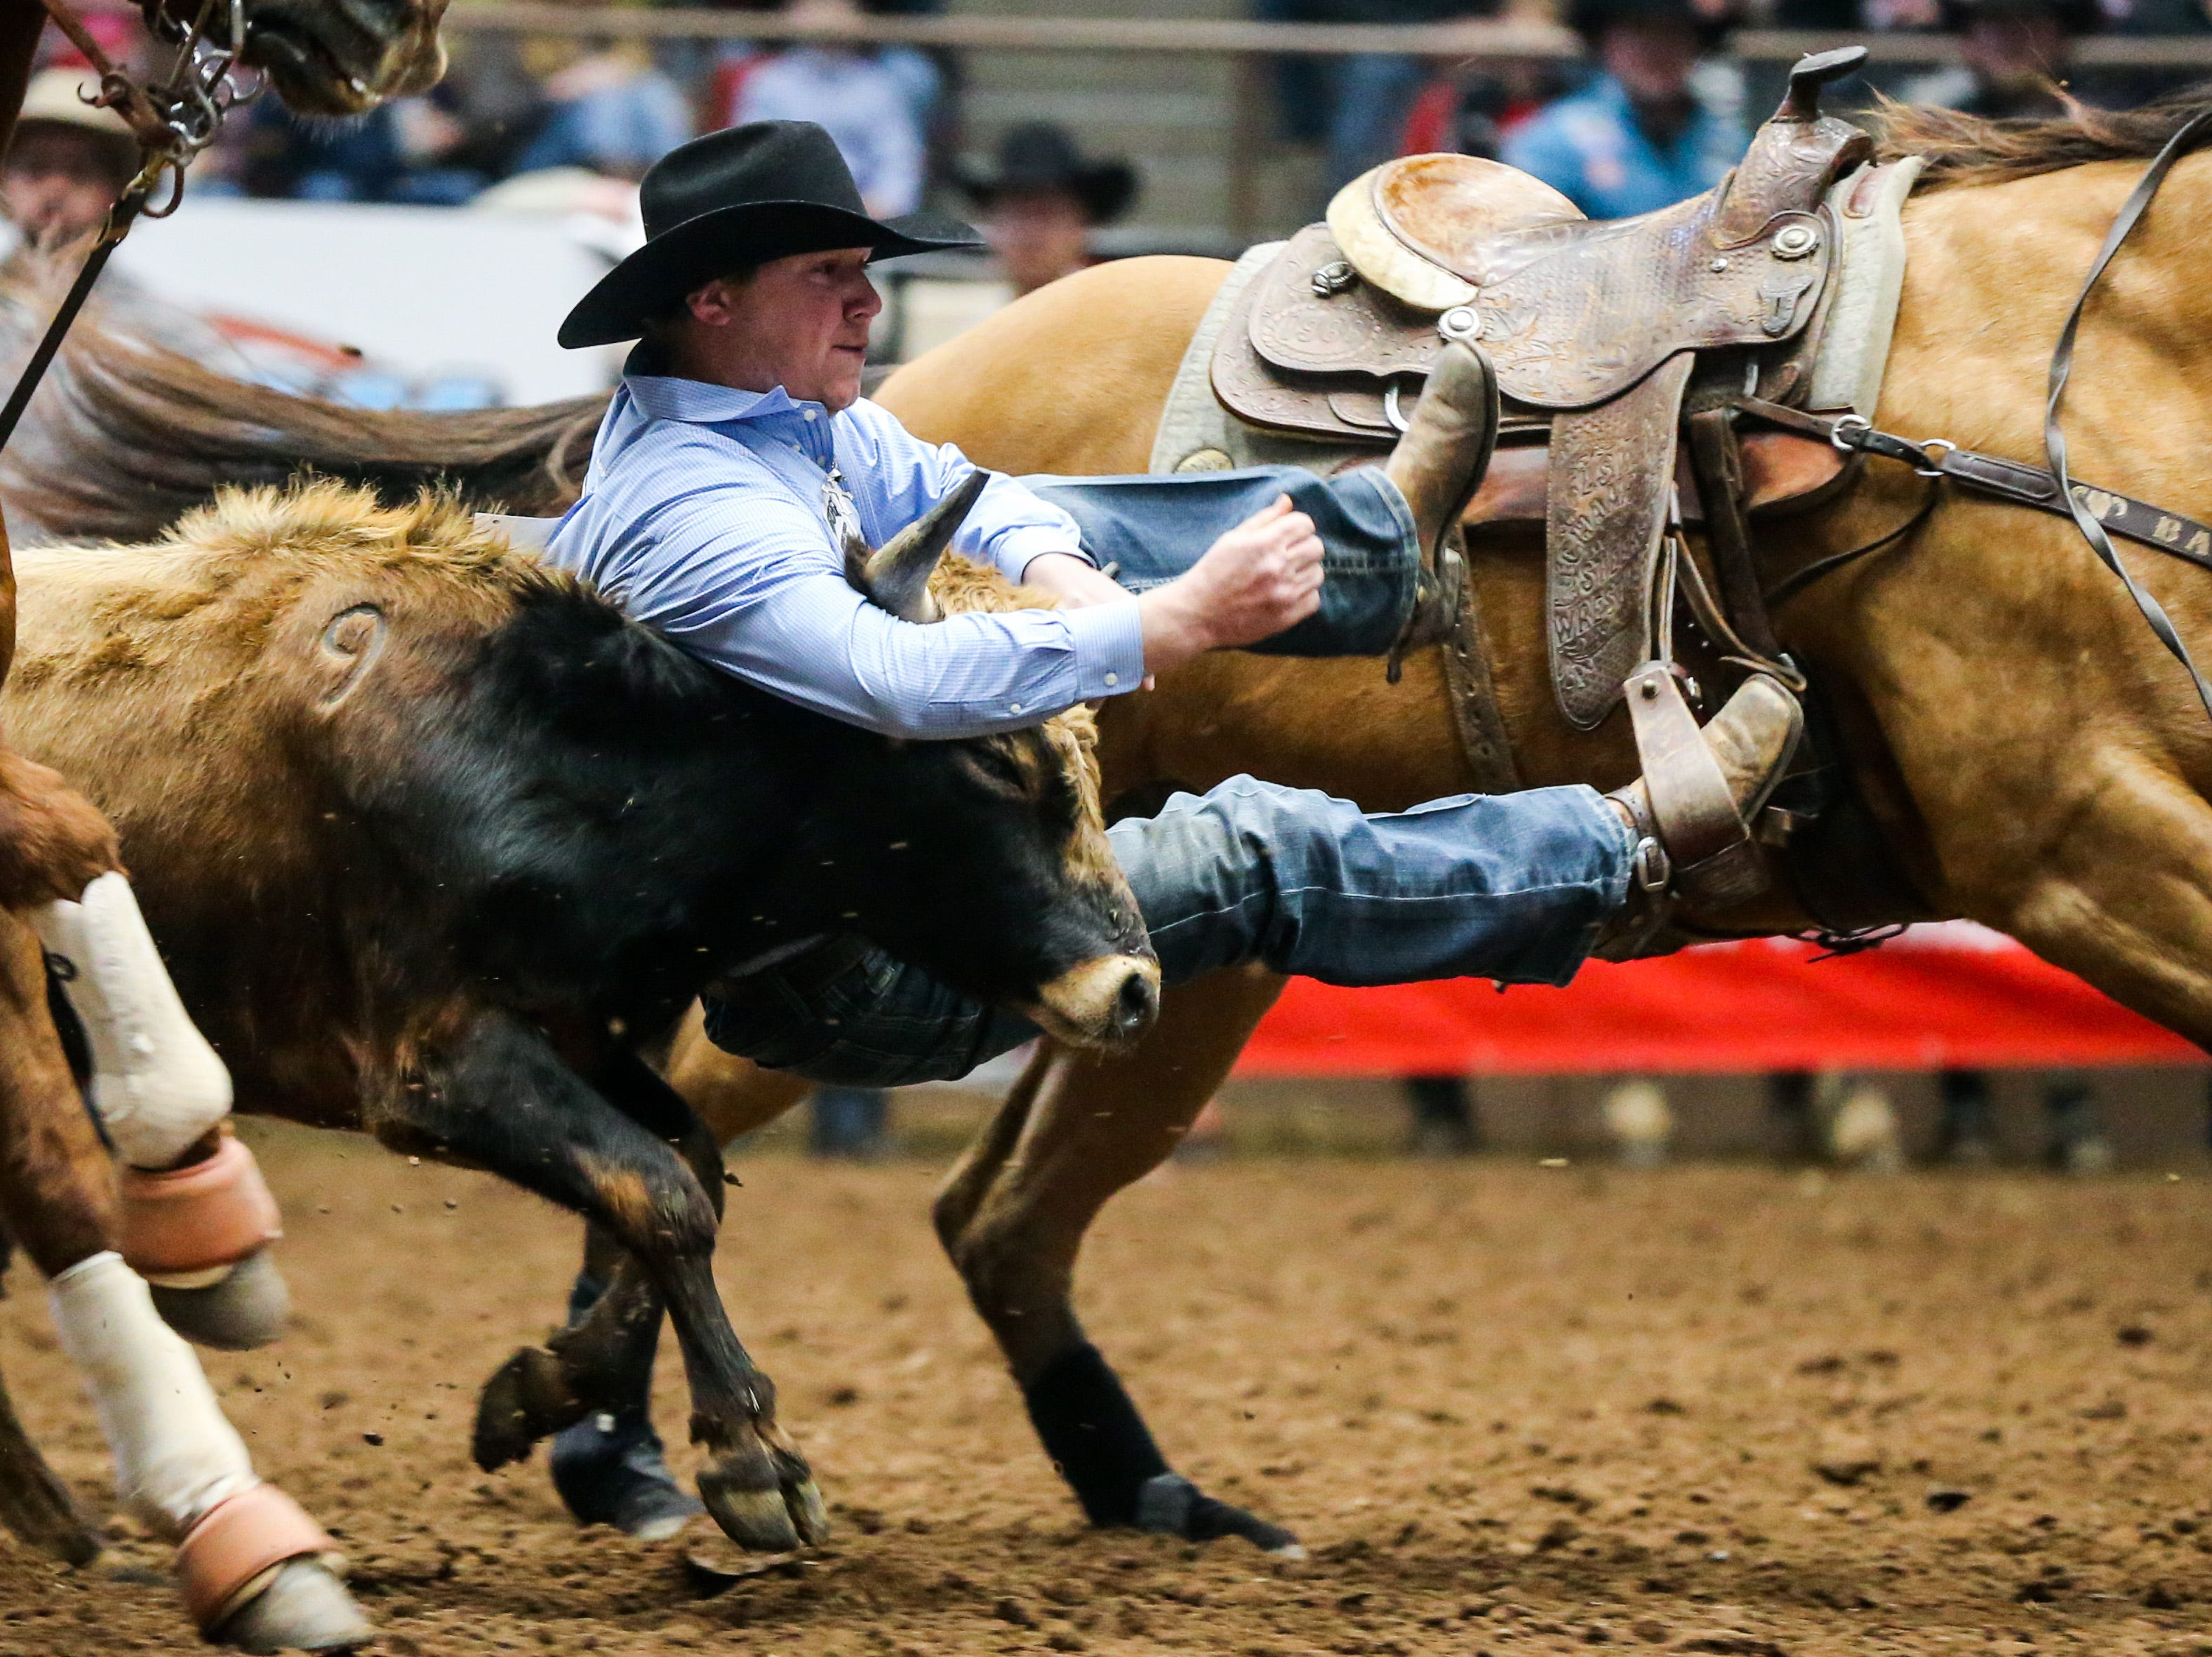 Heath Thomas rides out to steer wrestle during the San Angelo Stock Show & Rodeo matinee show Sunday, Feb. 10, 2019, at Foster Communications Coliseum.